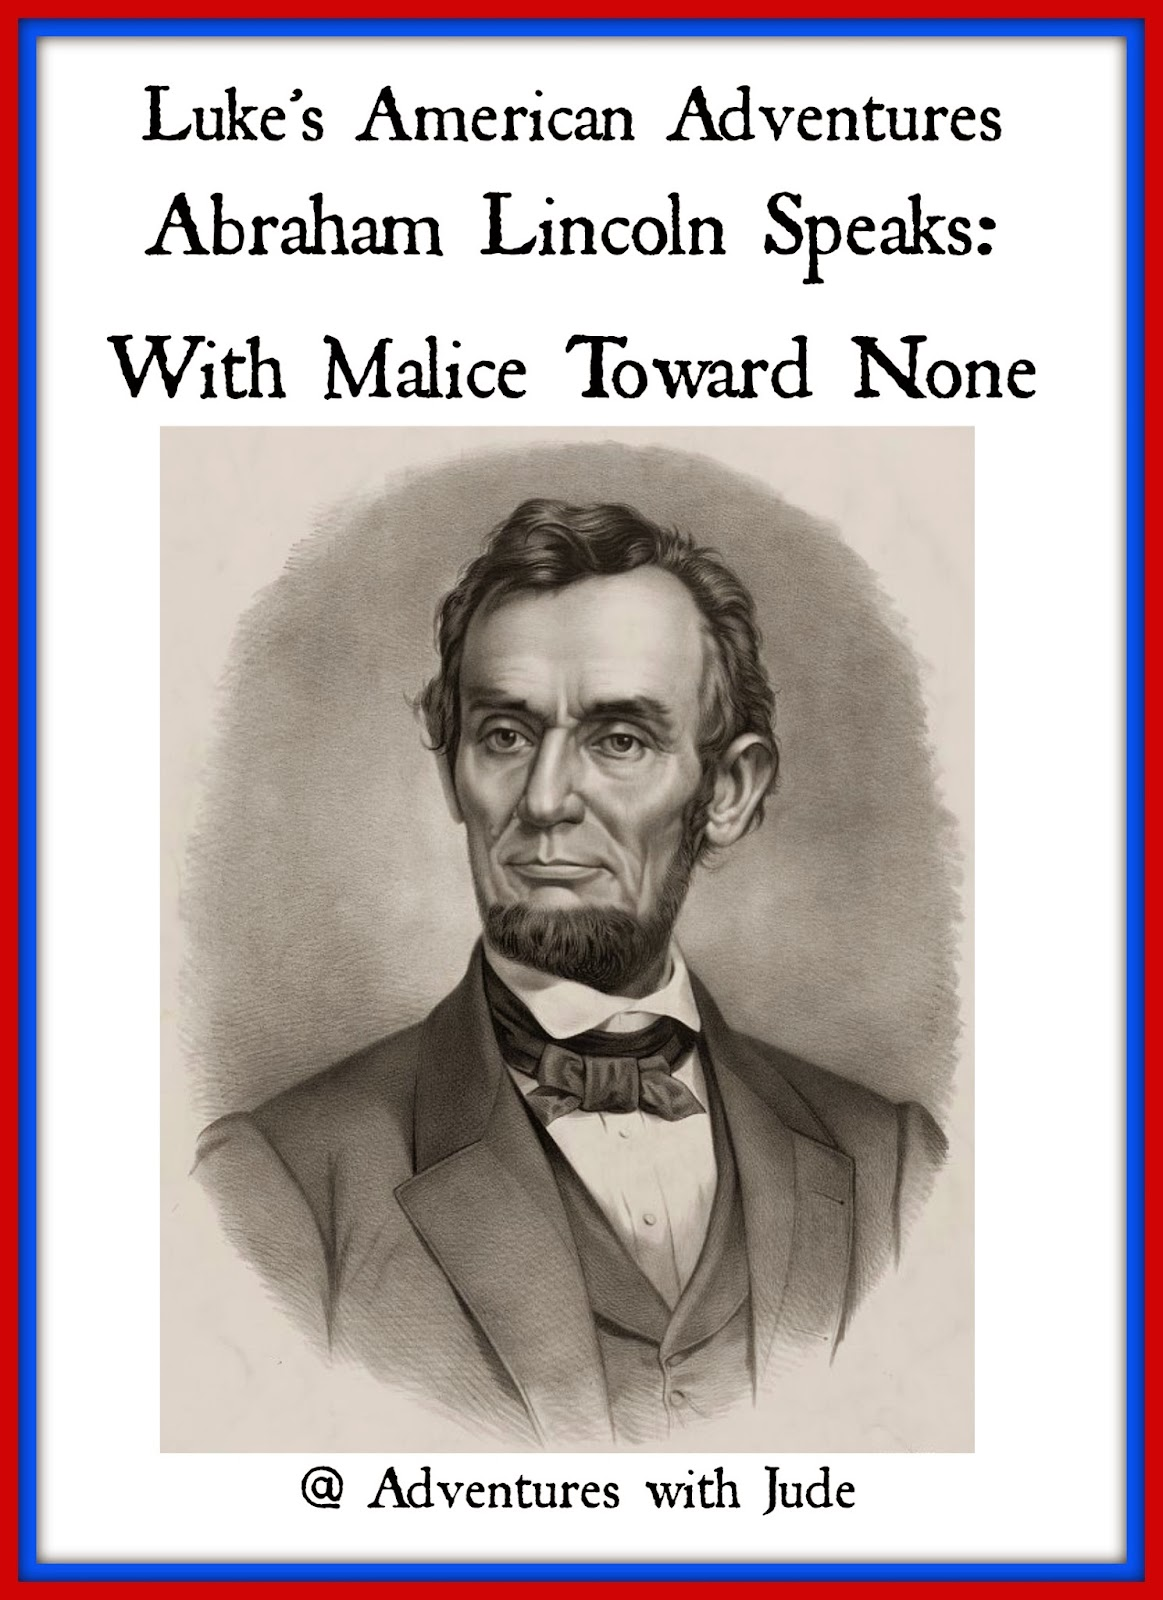 Lukes American Adventures Abraham Lincoln Speaks: With Malice Toward None